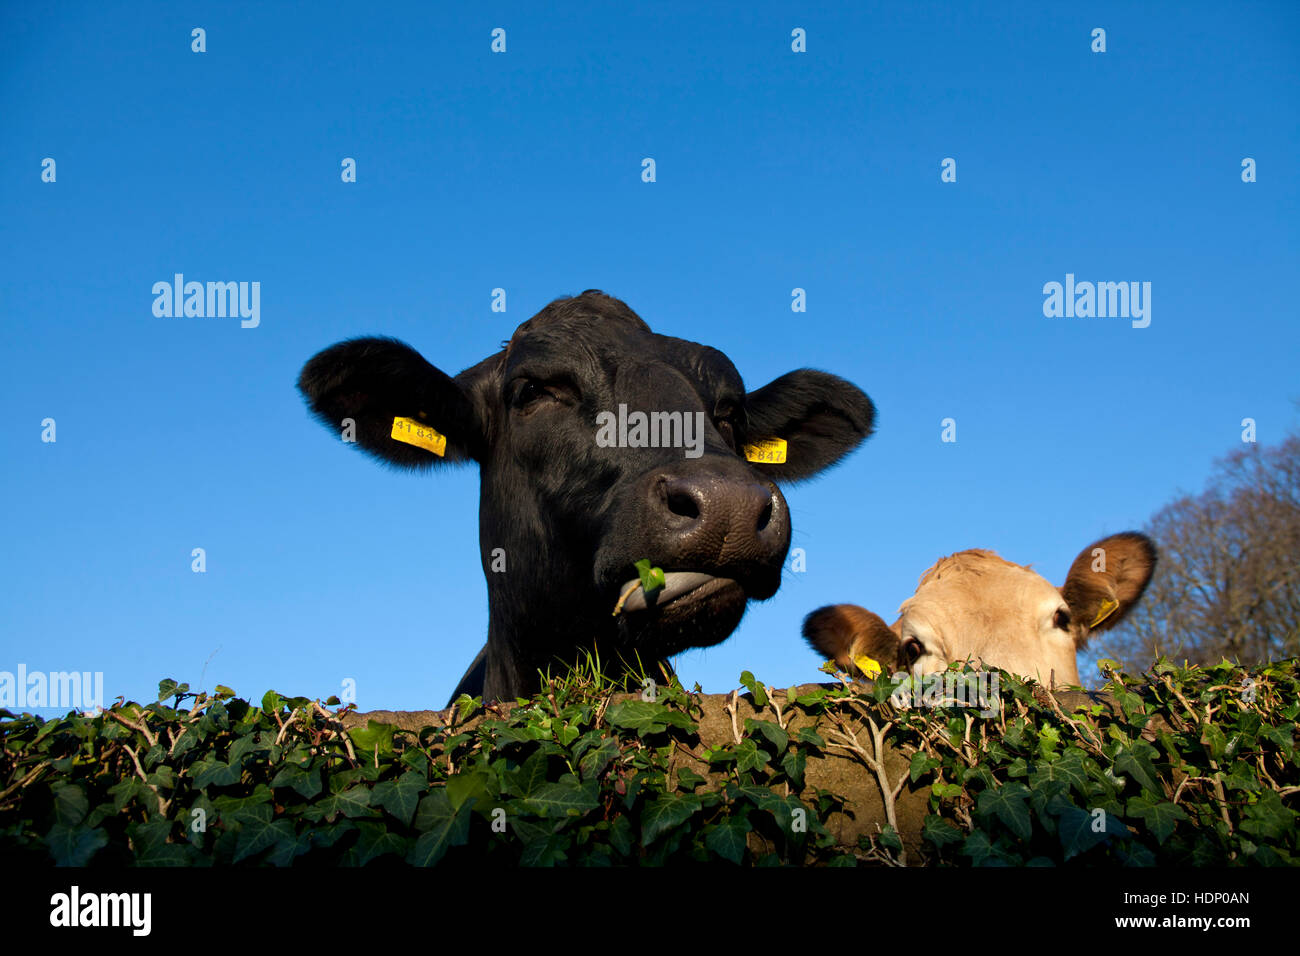 Europe, Germany, North Rhine-Westphalia, Herdecke, cows are looking over an ivy covered wal, the left cow is eating - Stock Image